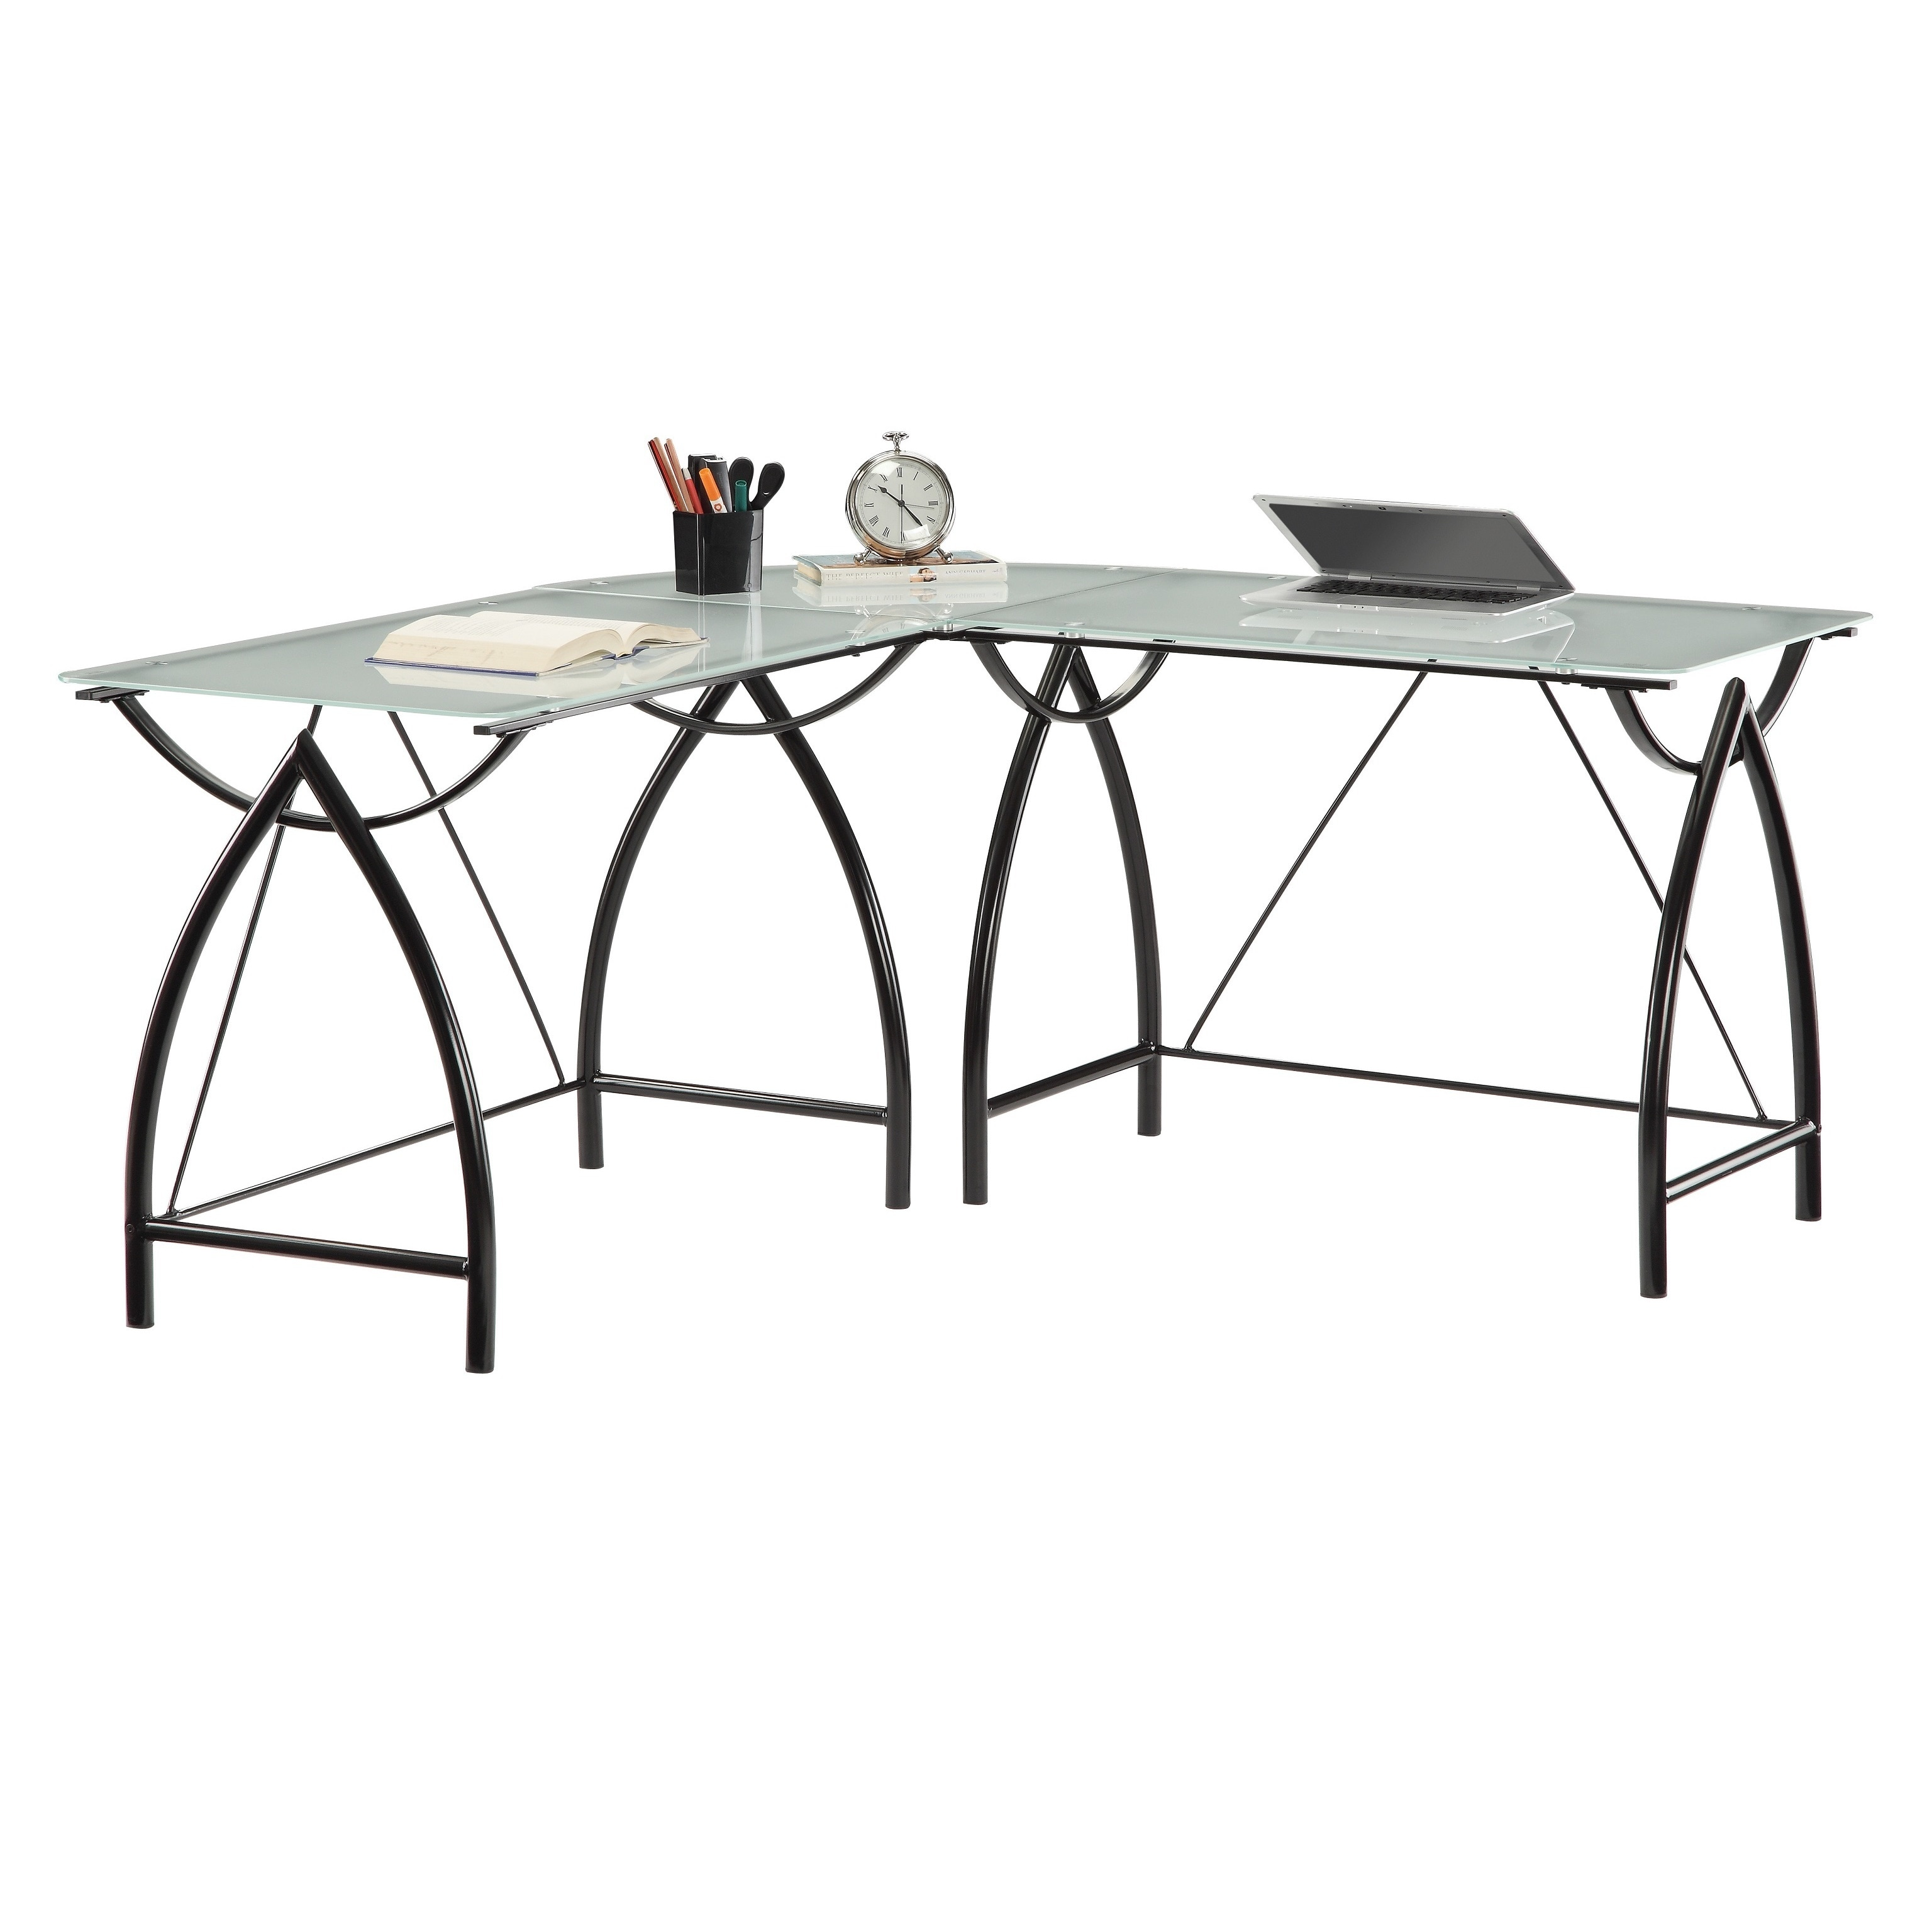 legs desks l shaped desk eight decoration nice awesome of design ideas home fascinating black furniture curving top interior decordat table glass with shape steel